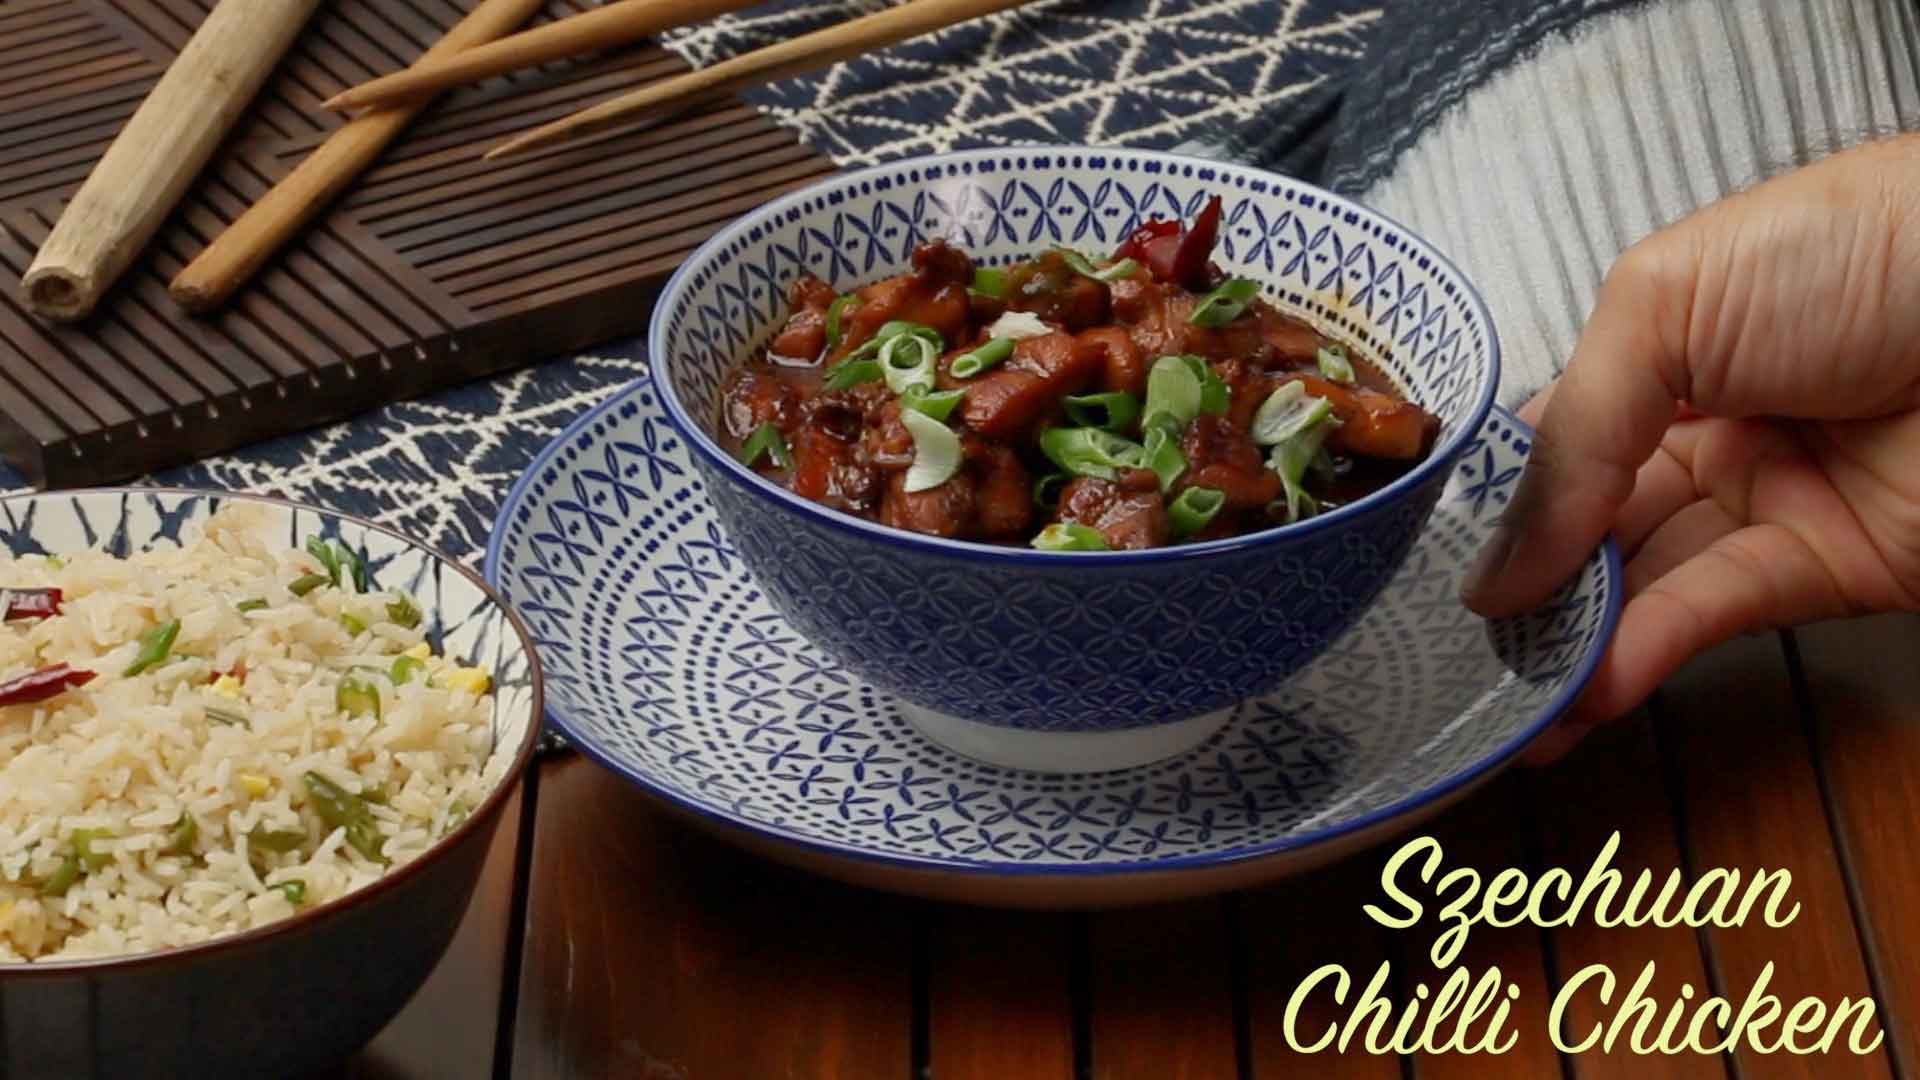 Chilli Chicken Szechuan Style Recipe | How To Make Chilli Chicken at Home